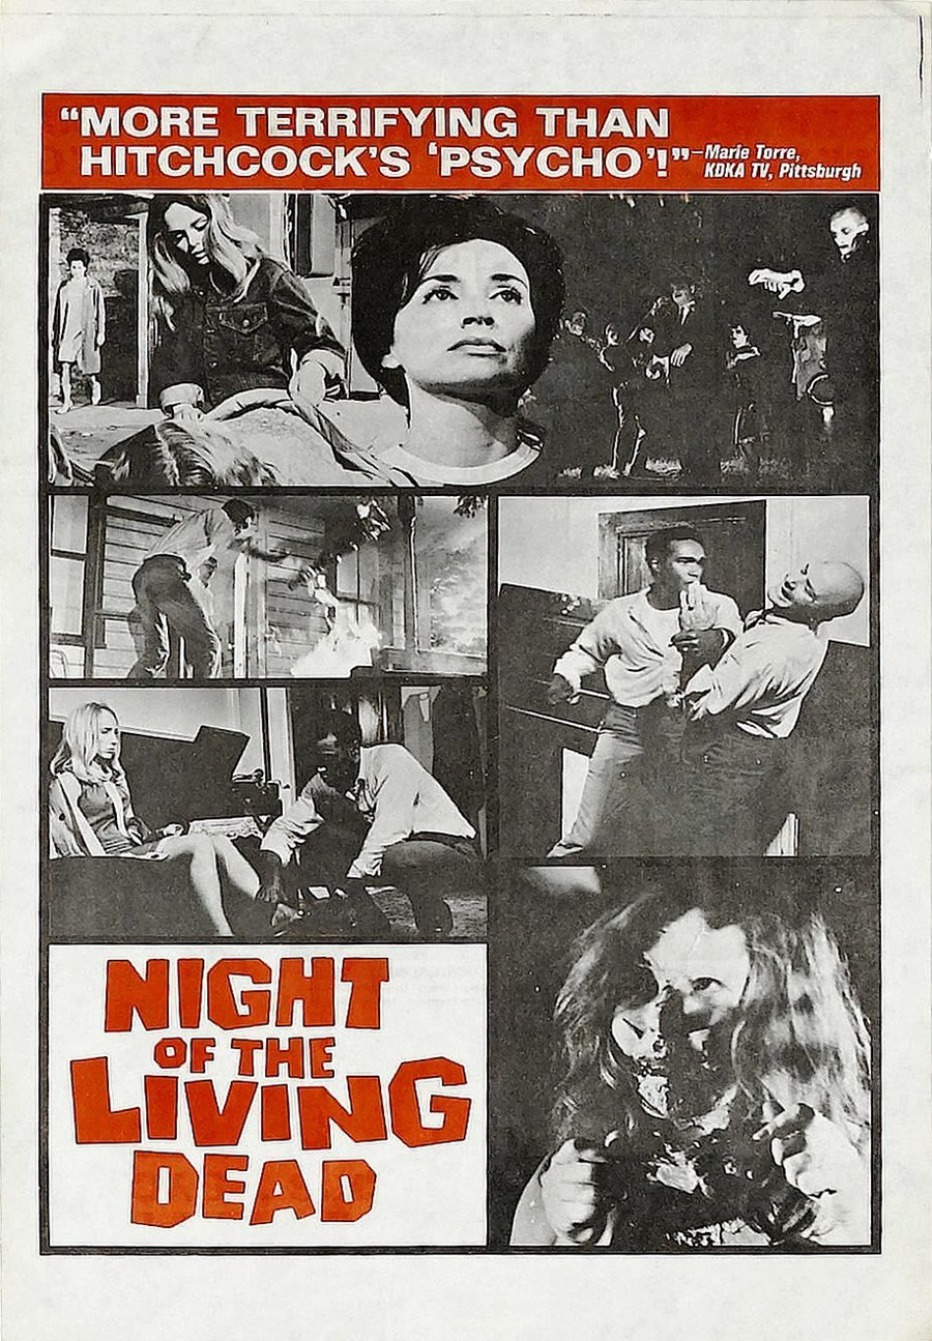 la-notte-dei-morti-viventi-night-of-living-dead-1968-george-a-romero-33.jpg